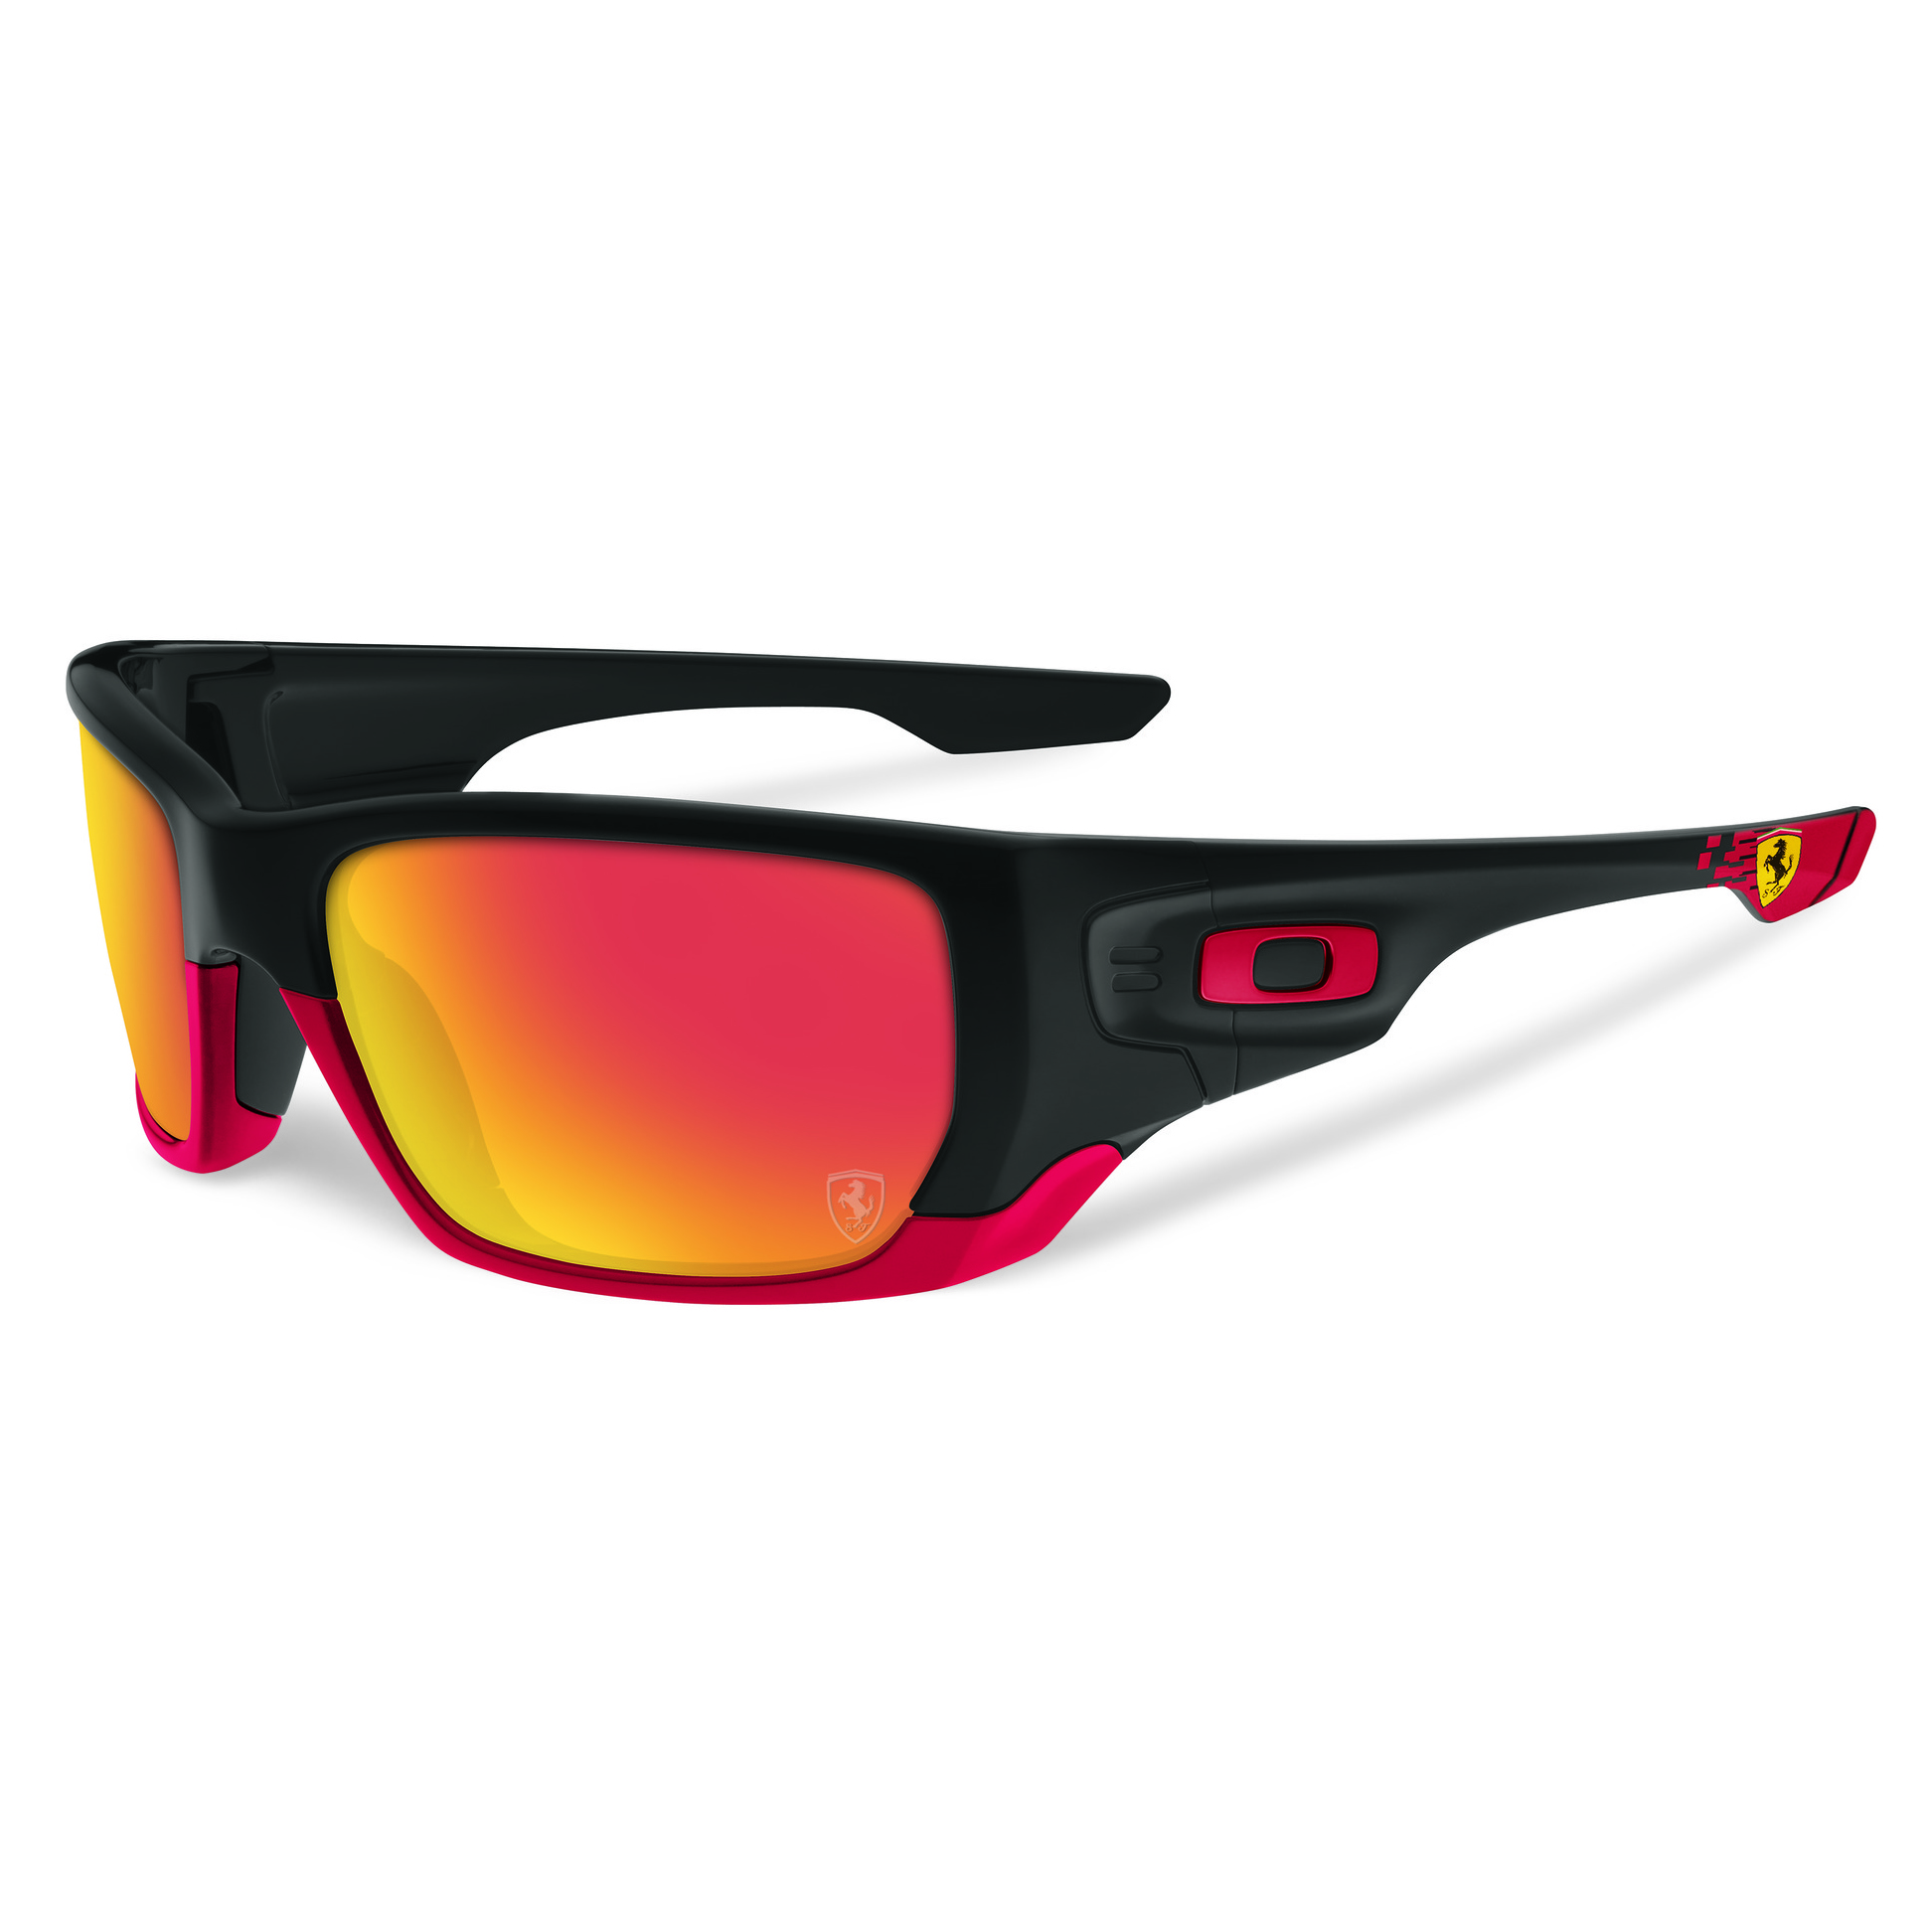 Scuderia Ferrari OAKLEY Style Switch Sunglasses